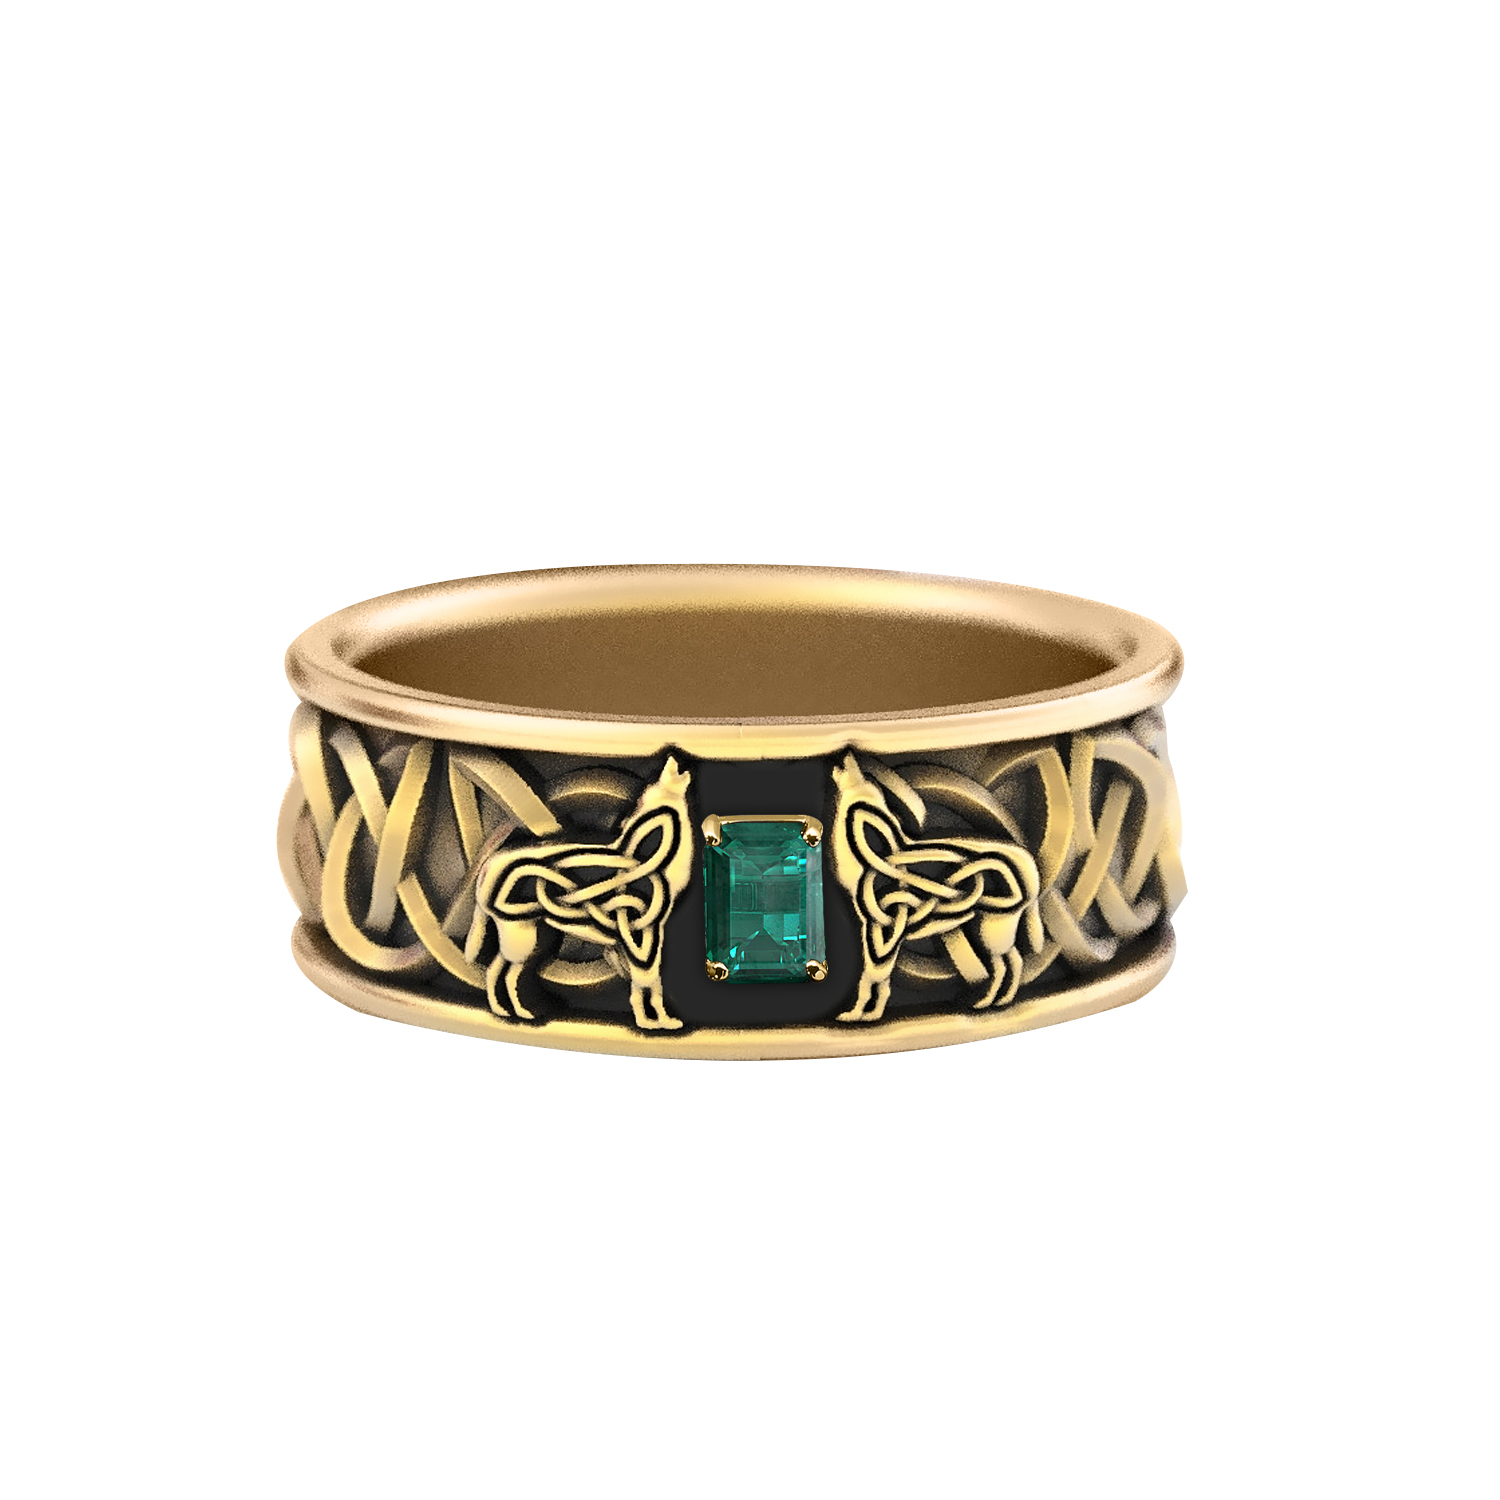 Wedding Ring in 14K Yellow Gold with Green Emerald Gemston 0.50 ctw